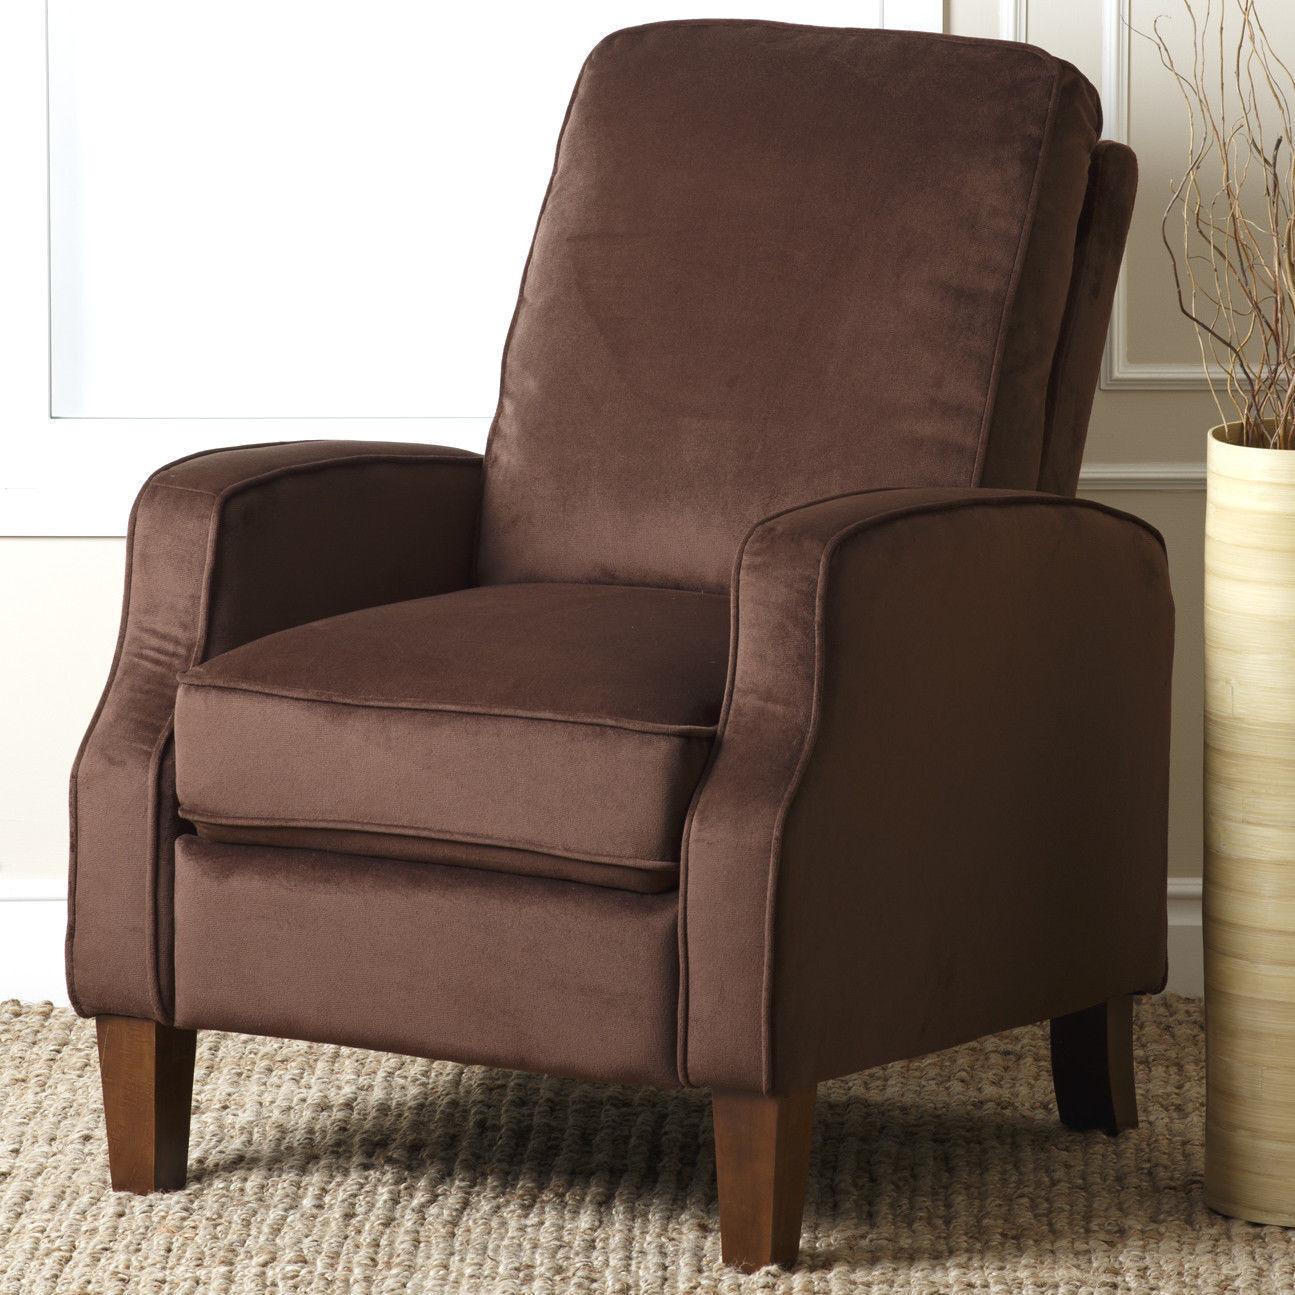 Abbyson Camden Living Recliner : best recliners for elderly - islam-shia.org